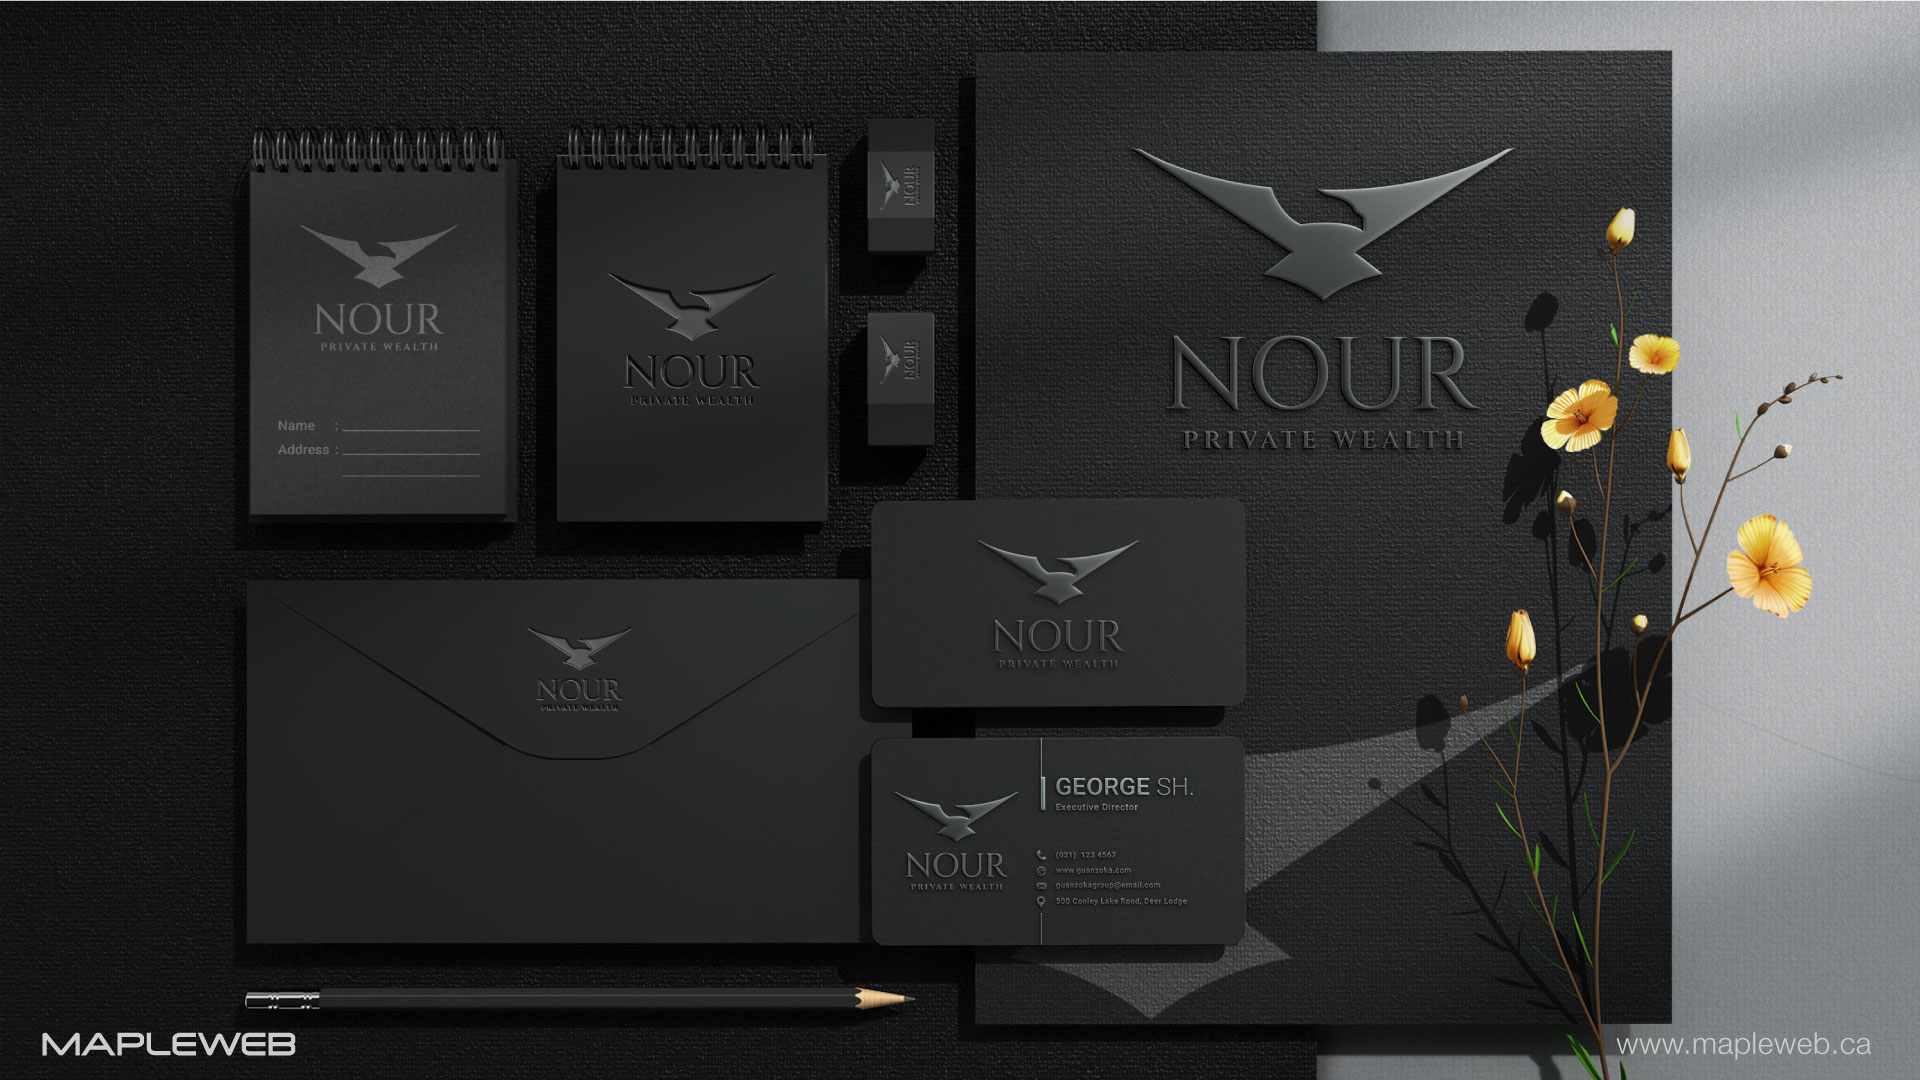 nour-private-wealth-brand-logo-design-by-mapleweb-vancouver-canada-stationery-mock